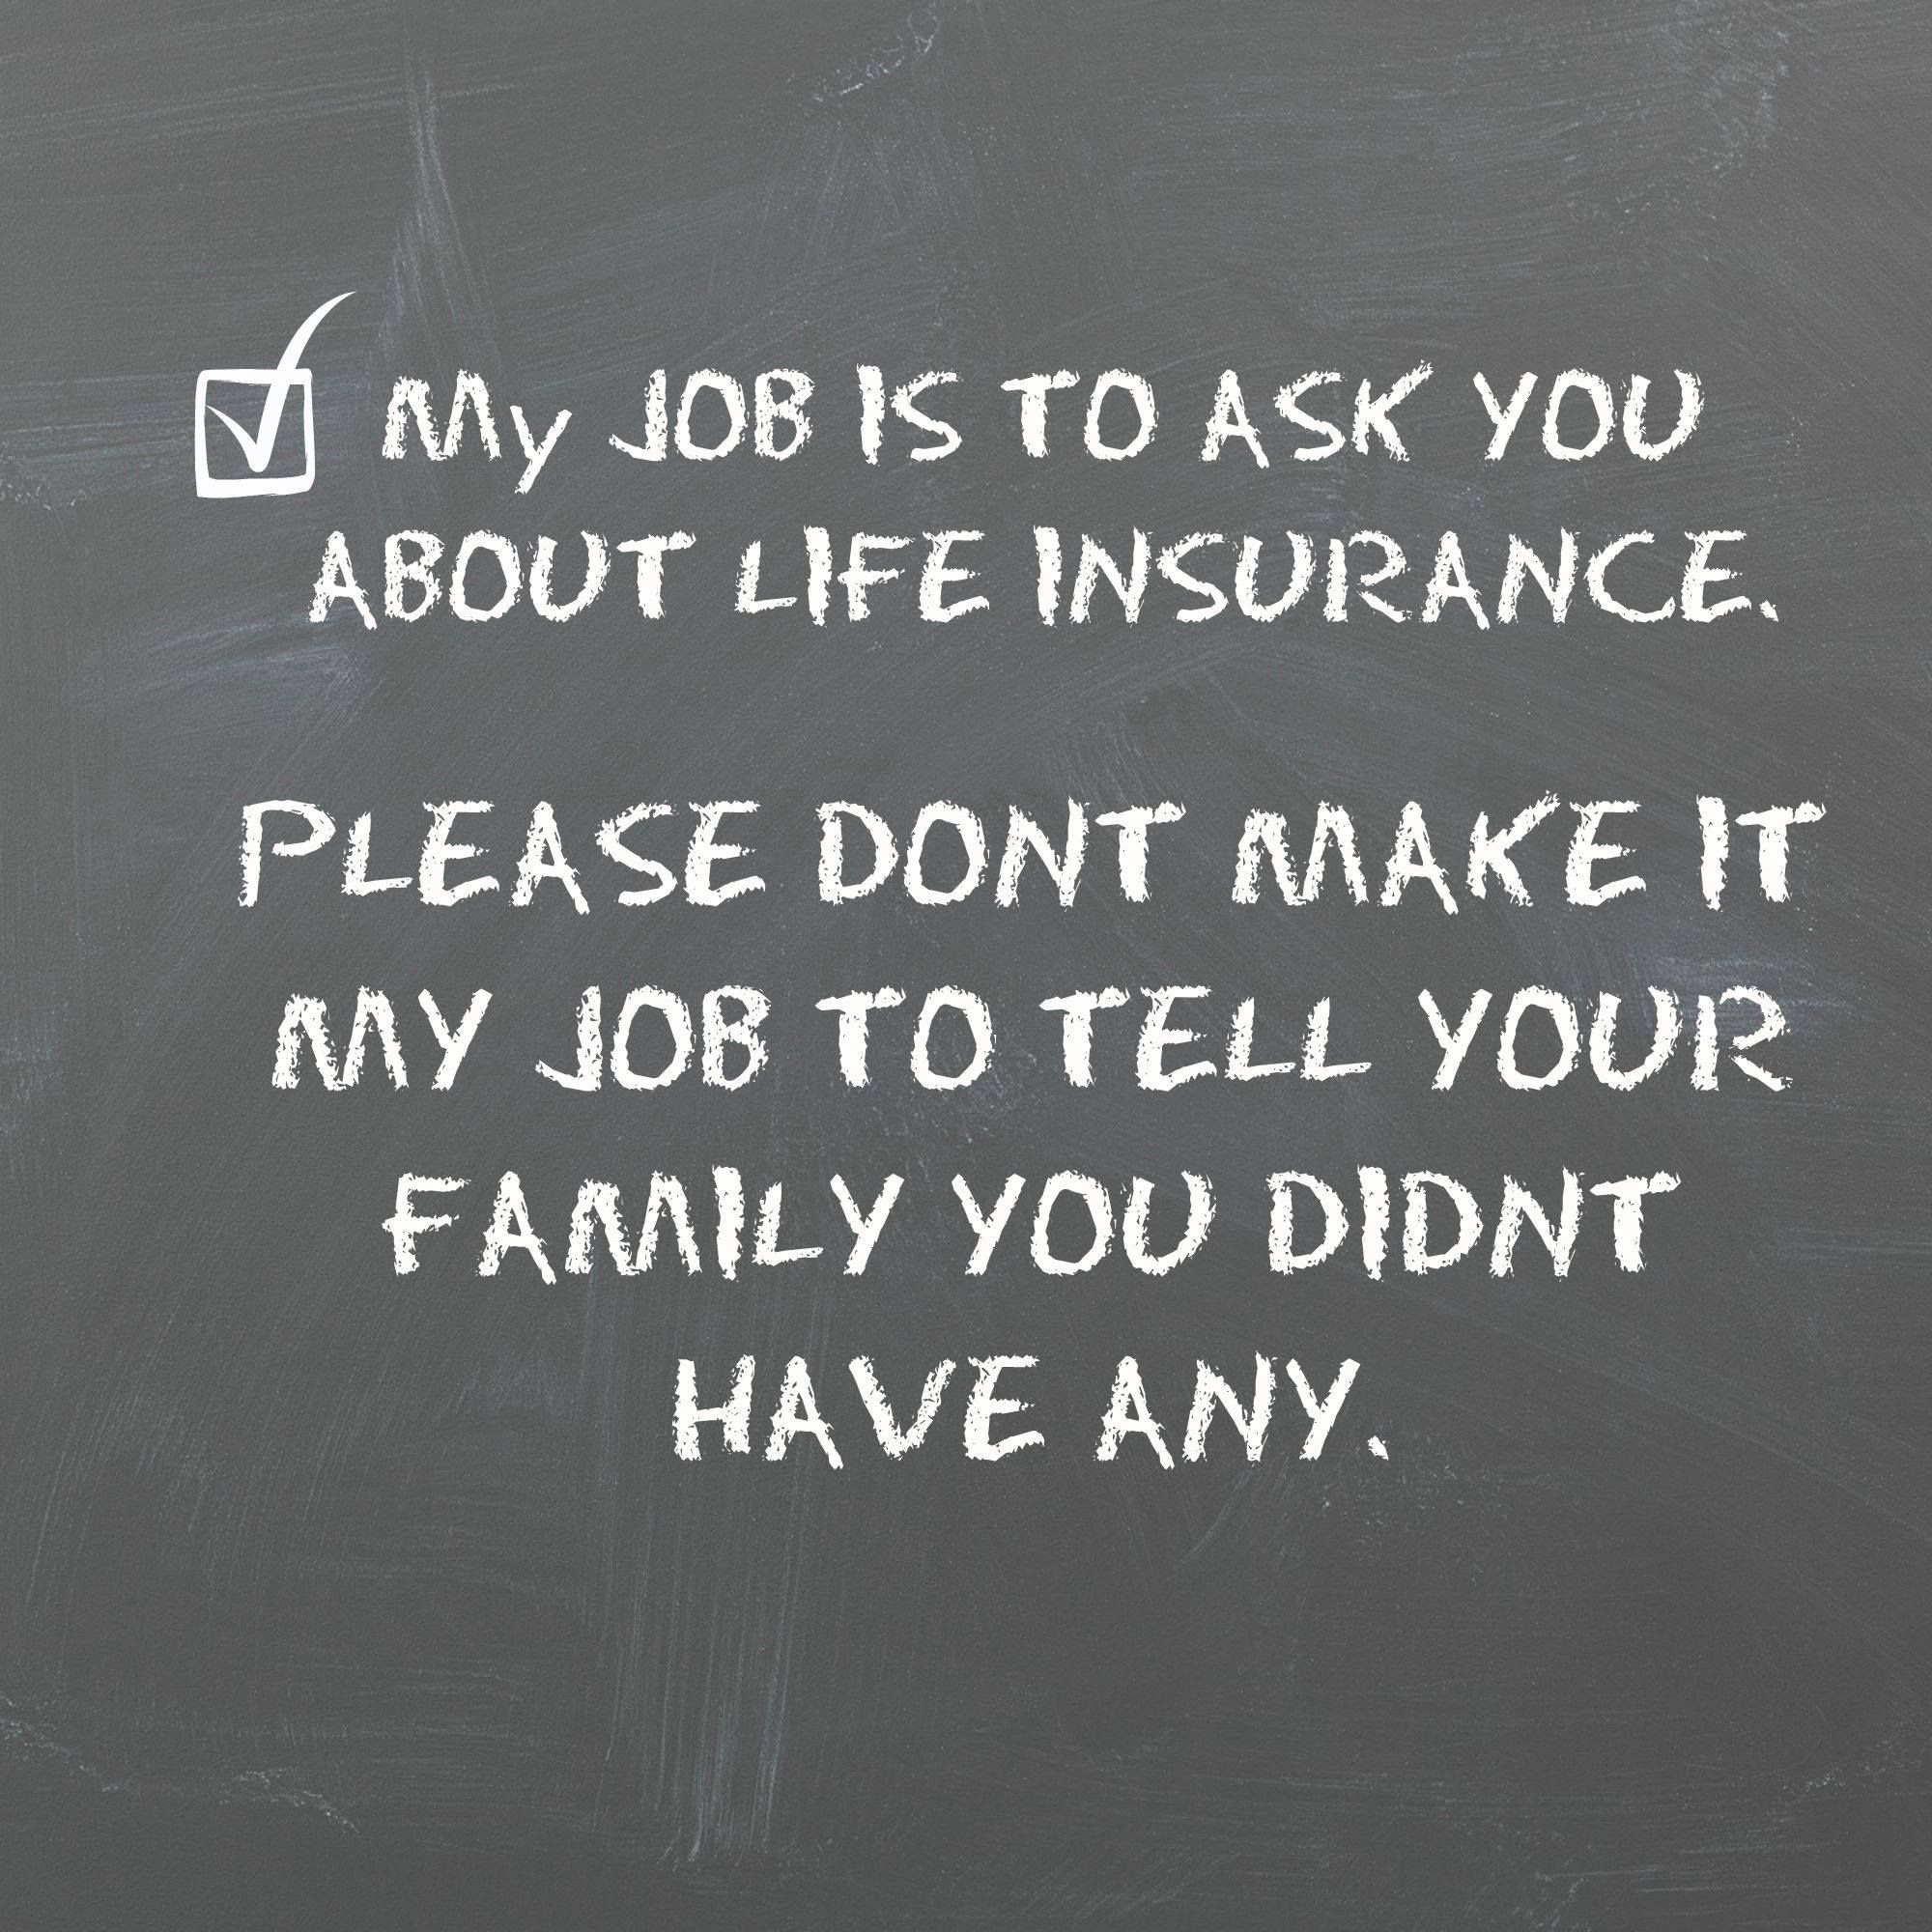 Life Insurance Quote Entrancing Call Us For Any #lifeinsurance Questions That You Have At 330225